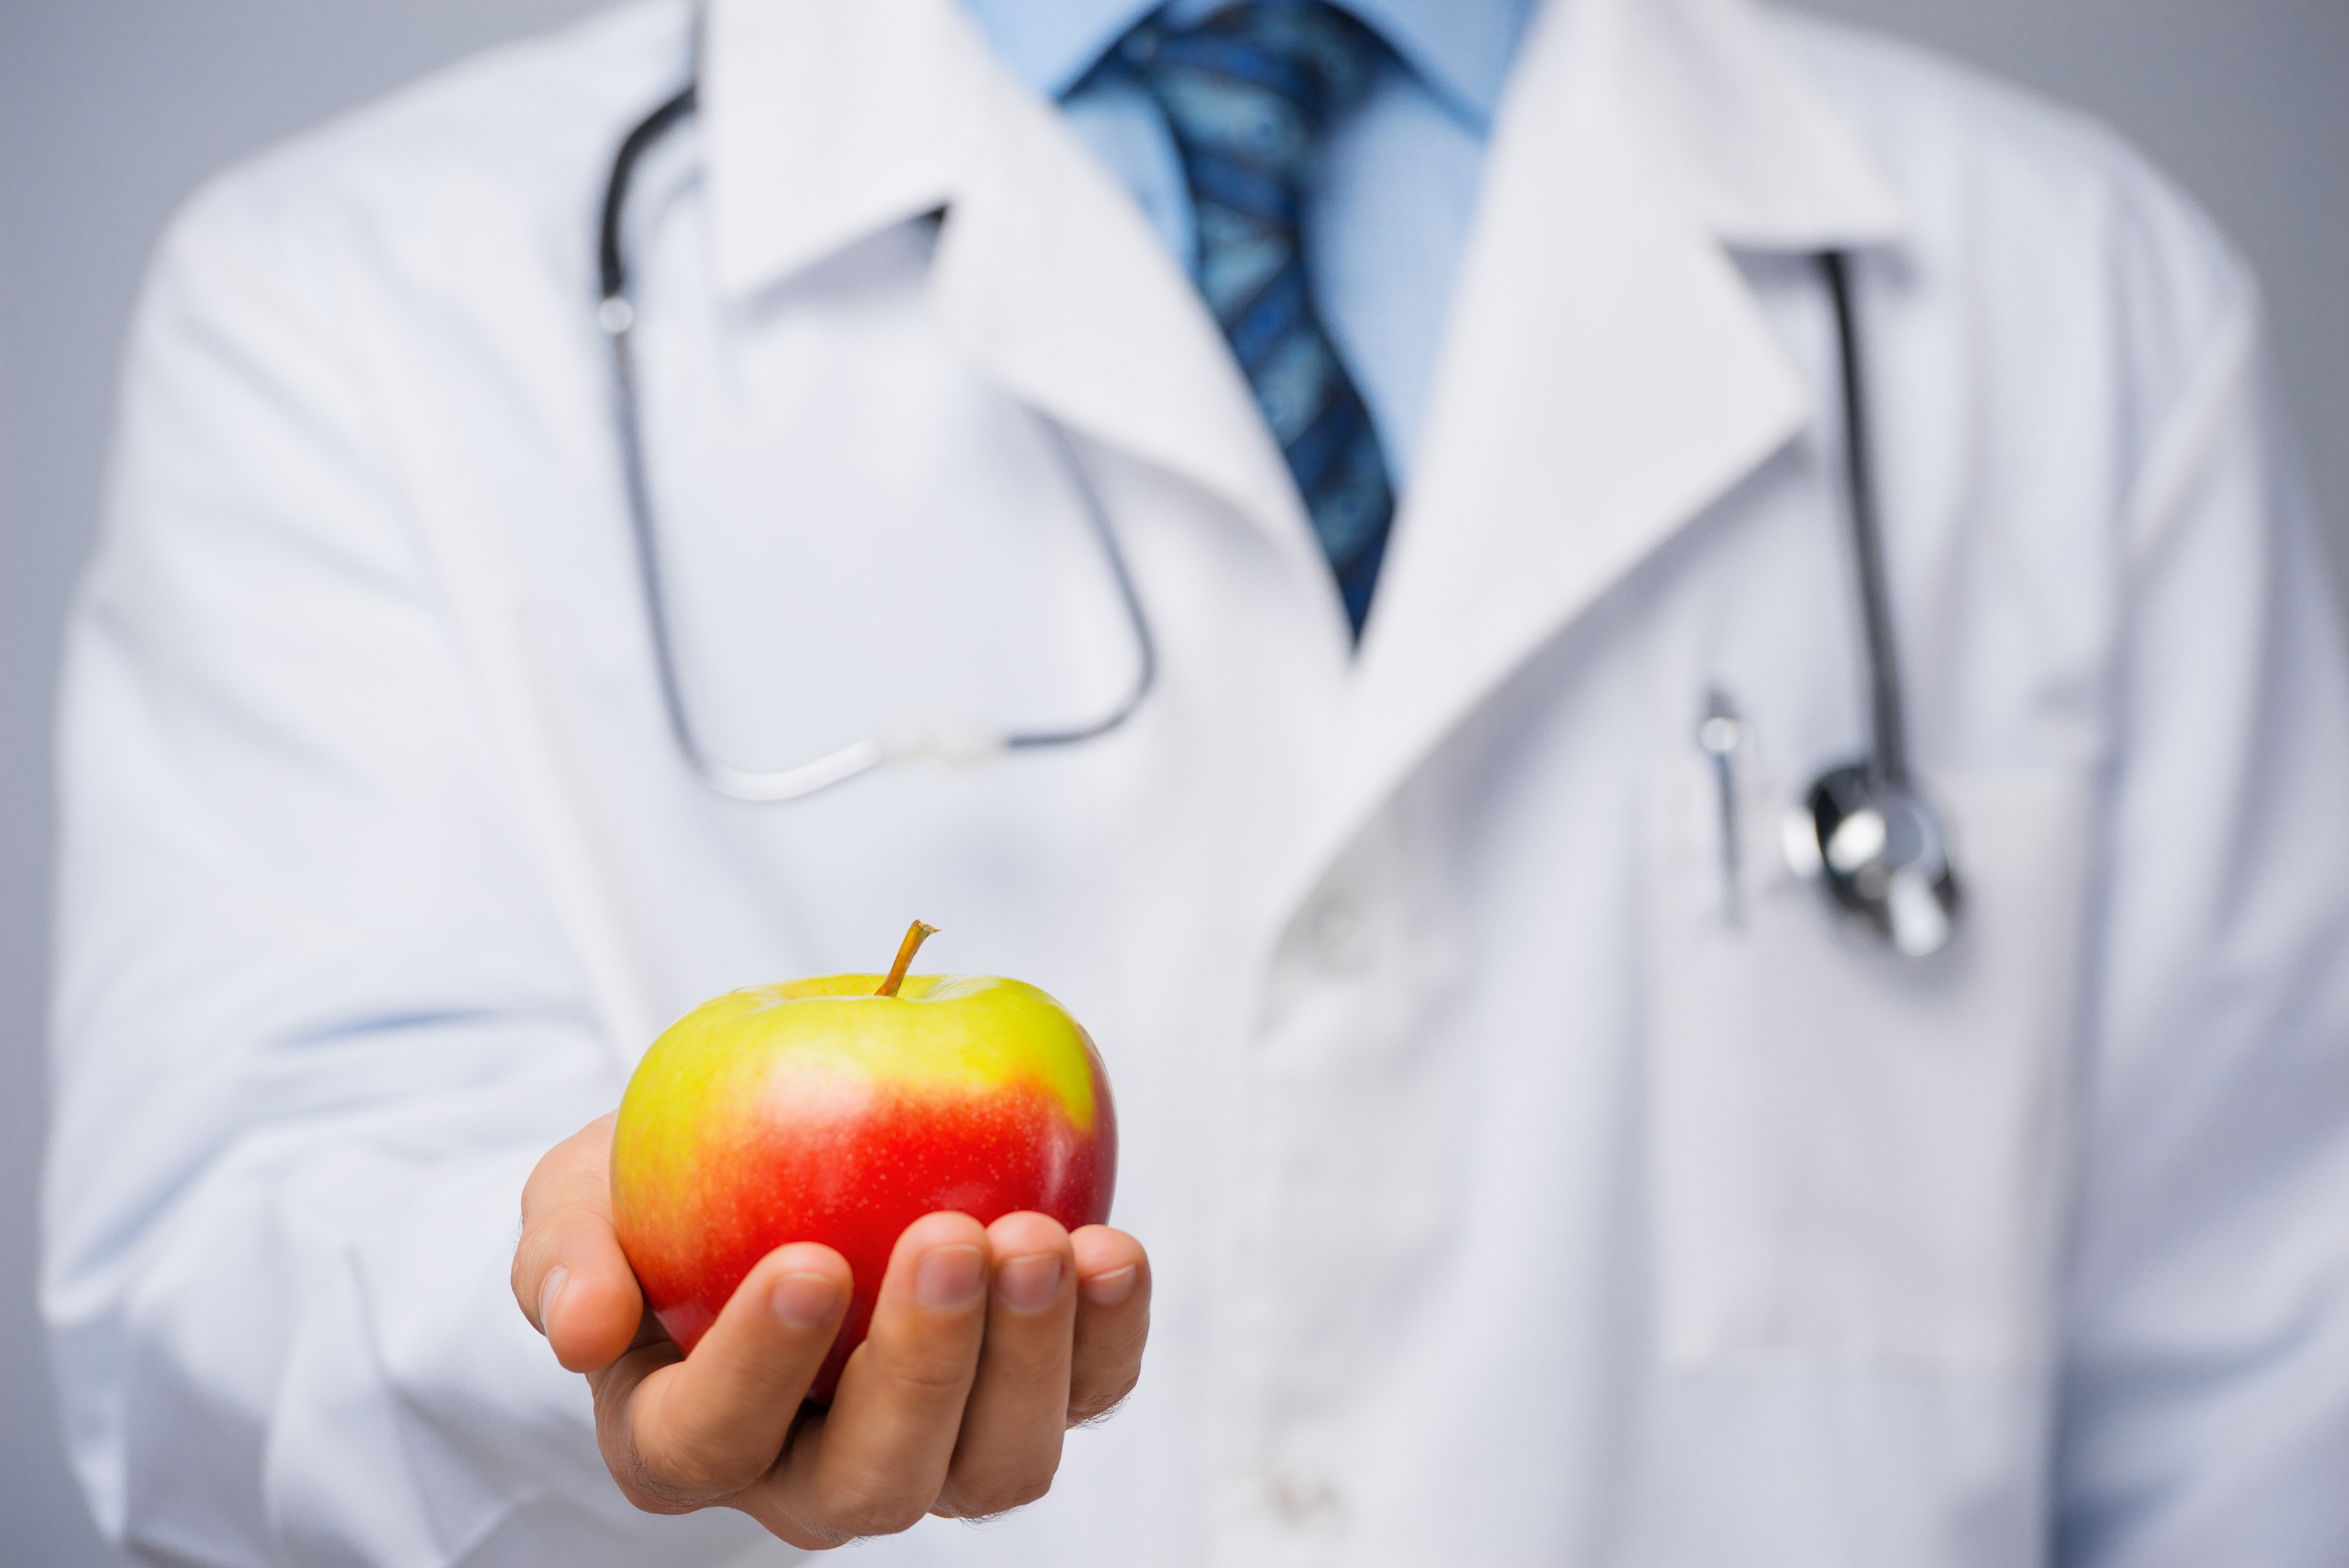 An apple a day may not keep the doctor away but its a healthy an apple a day may not keep the doctor away but its a healthy choice anyway harvard health blog harvard health publishing buycottarizona